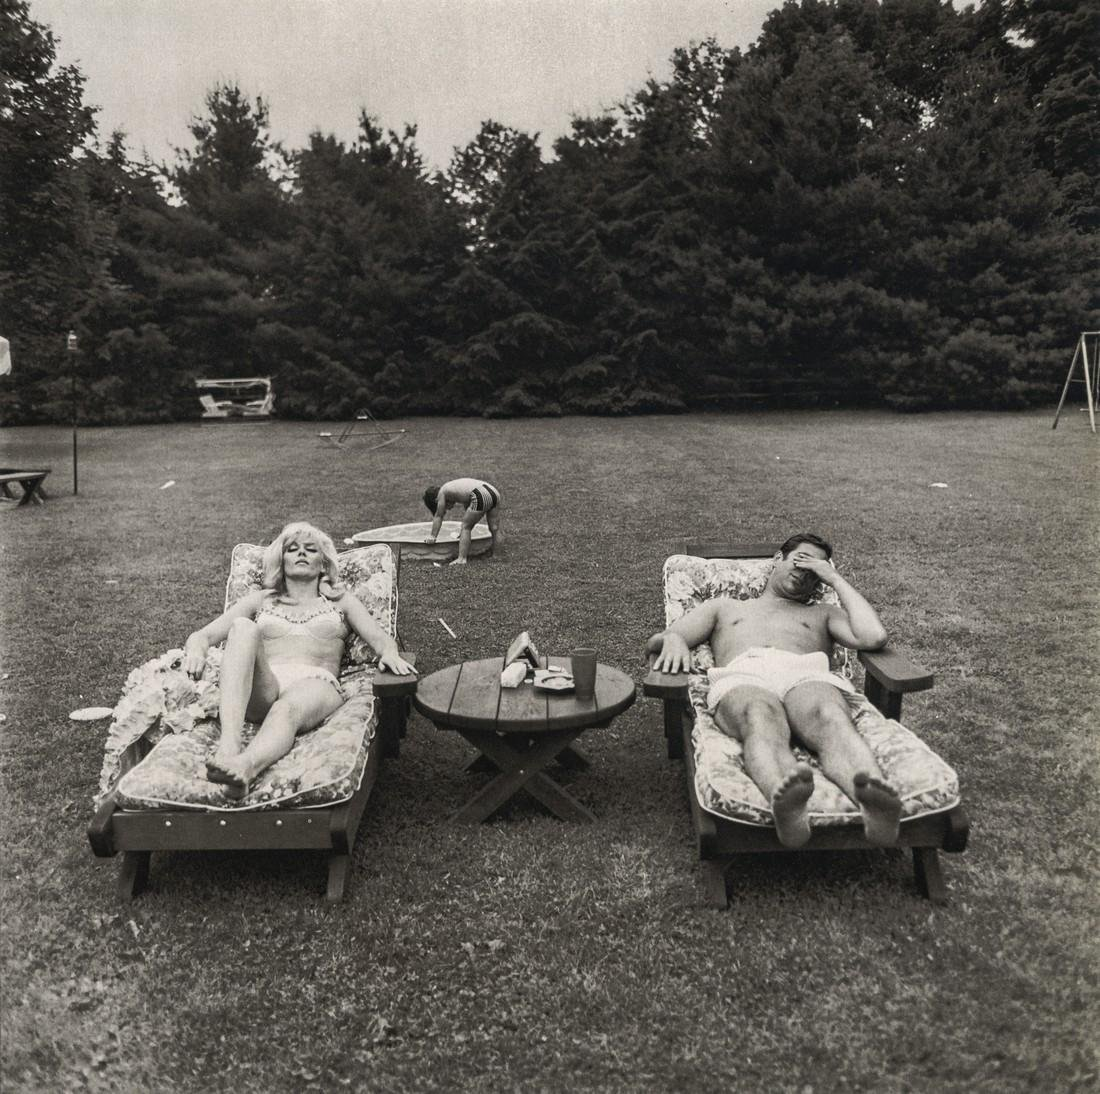 DIANE ARBUS - A Family on their Lawn, Westchester, NY